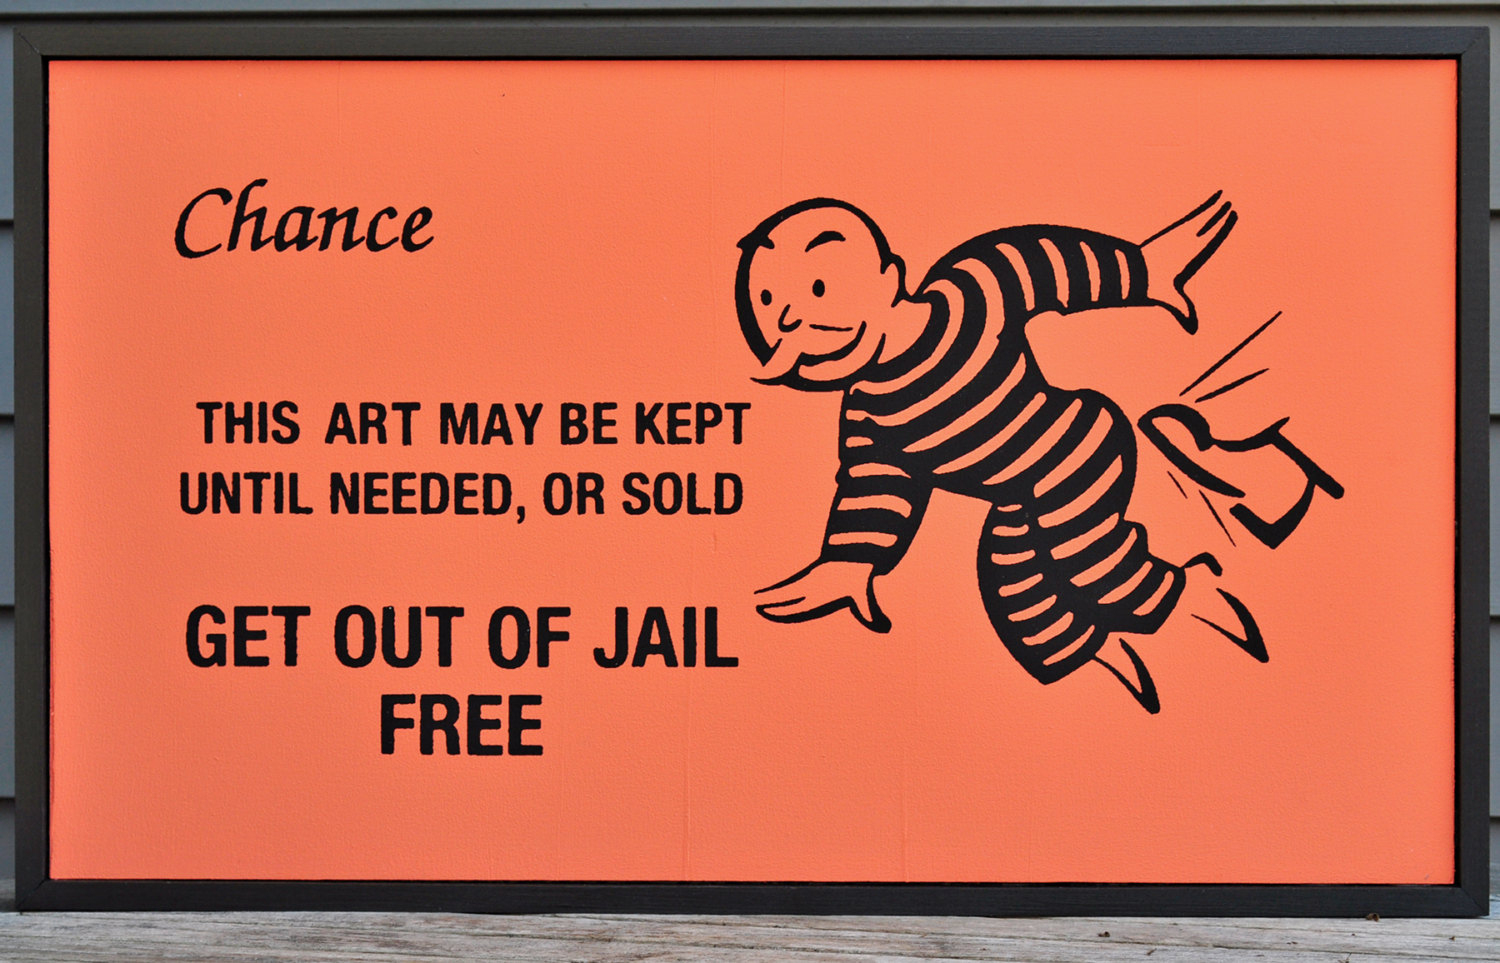 Get Out Of Jail Free - Shawn Whatley Md - Get Out Of Jail Free Card Printable